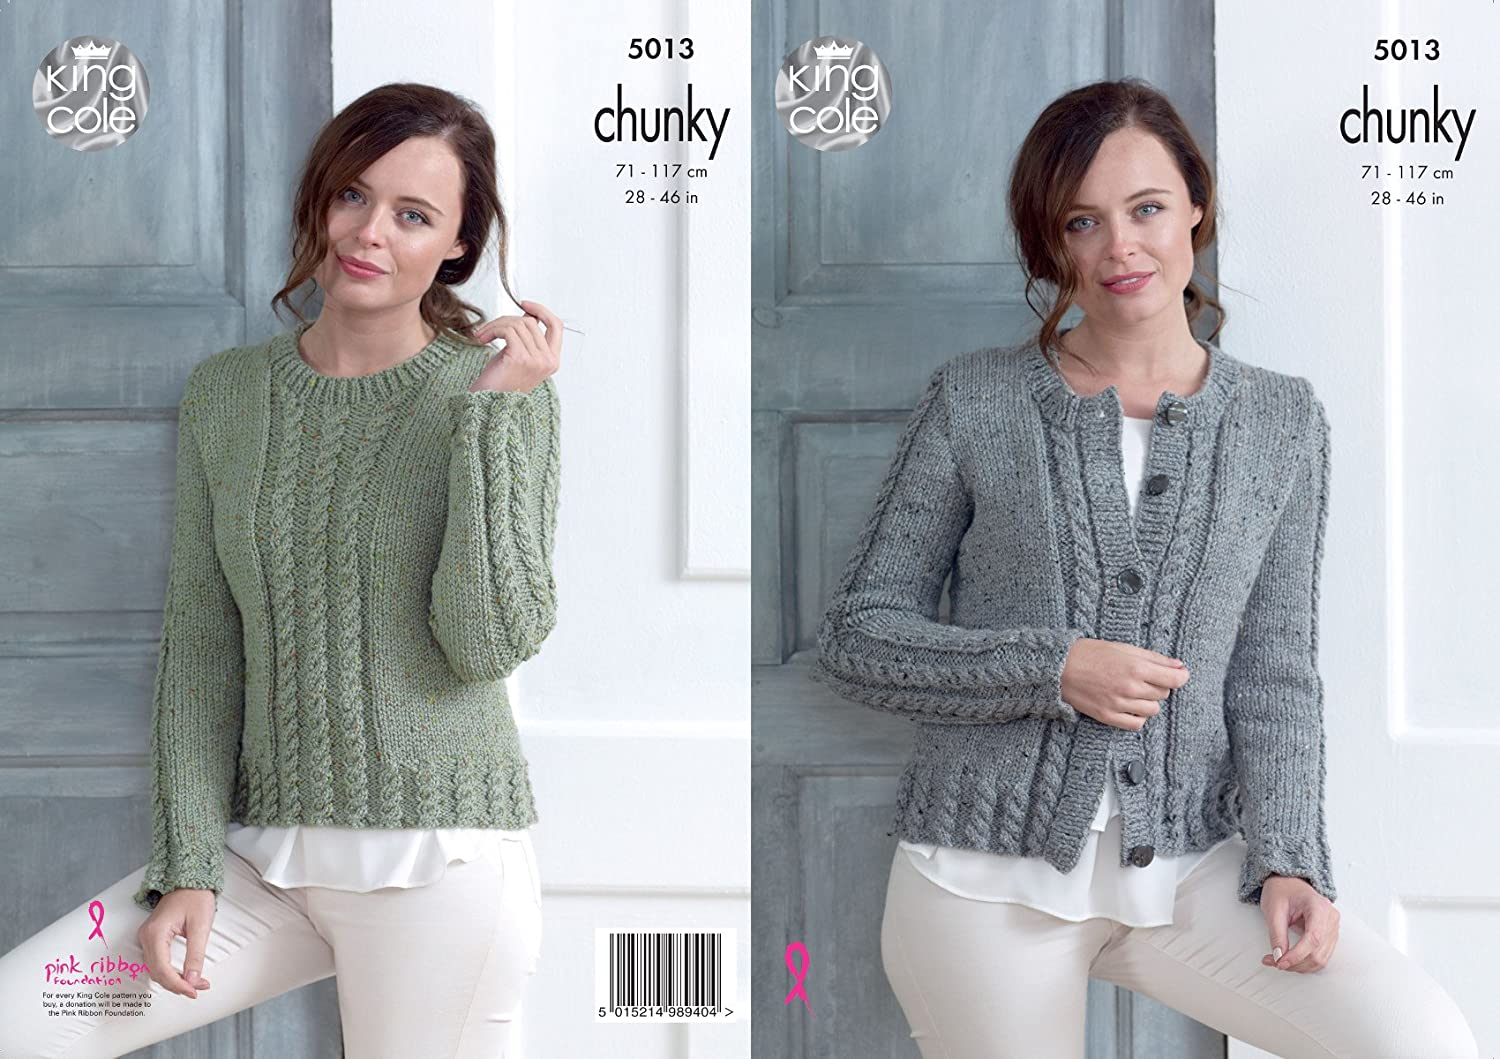 3d4e8a640523a7 King Cole Ladies Chunky Knitting Pattern Womens Cabled Cardigan   Sweater  (5013)  Amazon.co.uk  Kitchen   Home